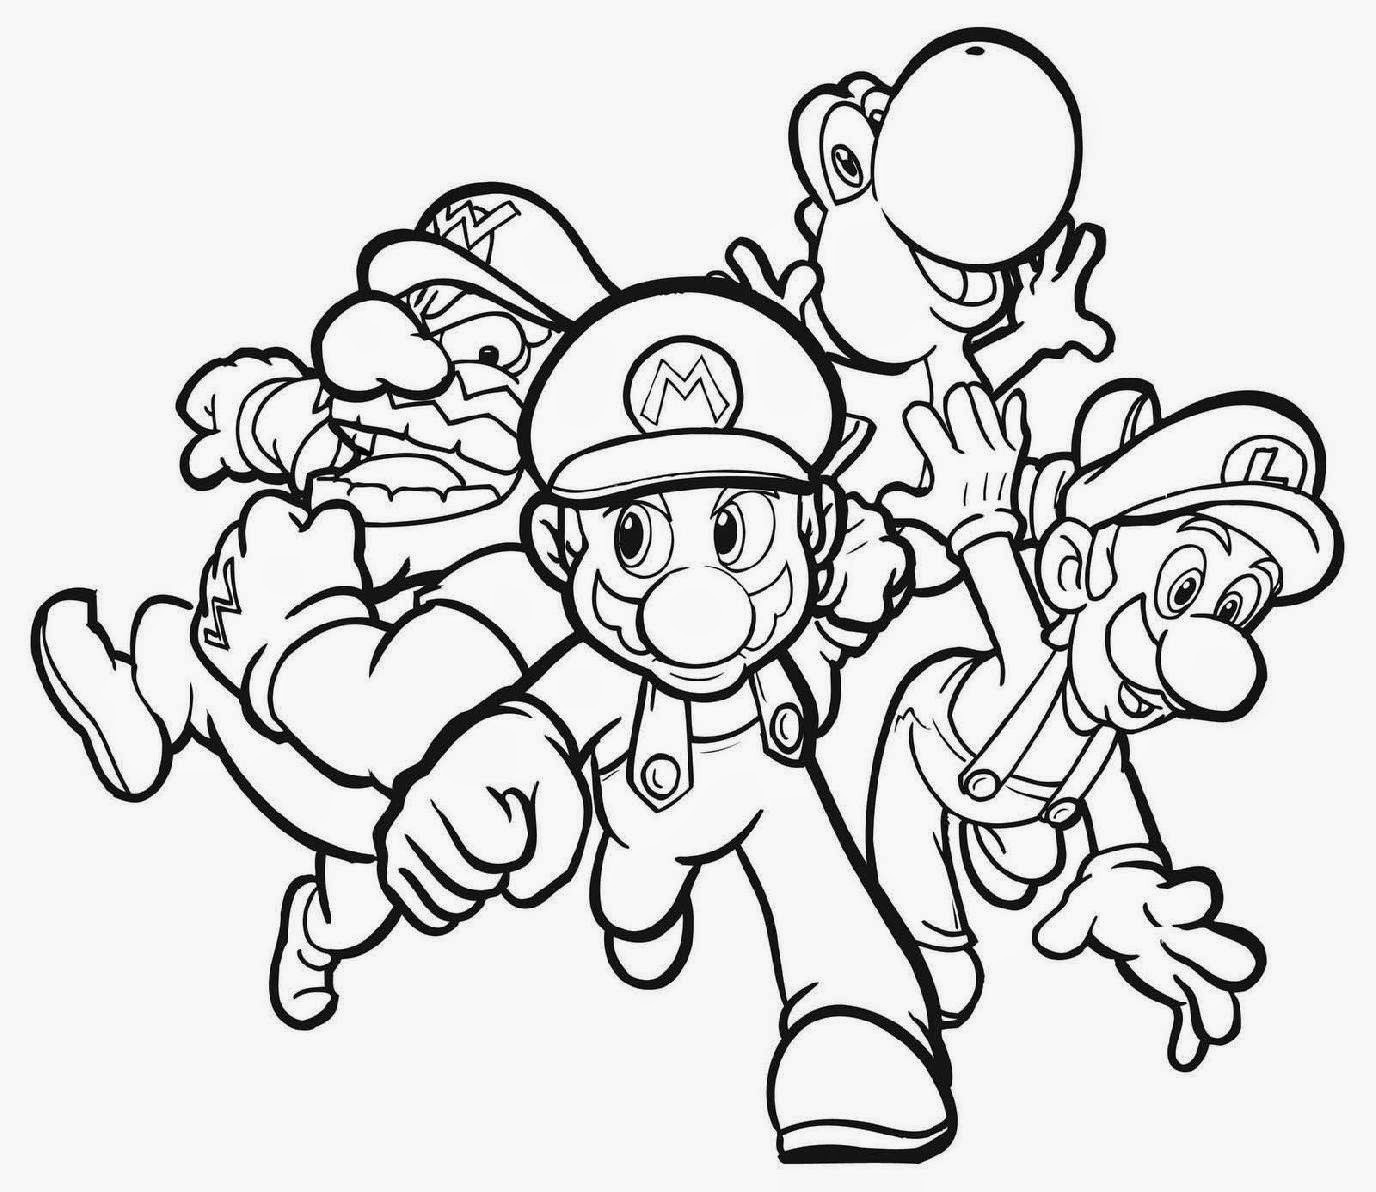 Toadette Coloring Page At Getdrawings Com Free For Personal Use